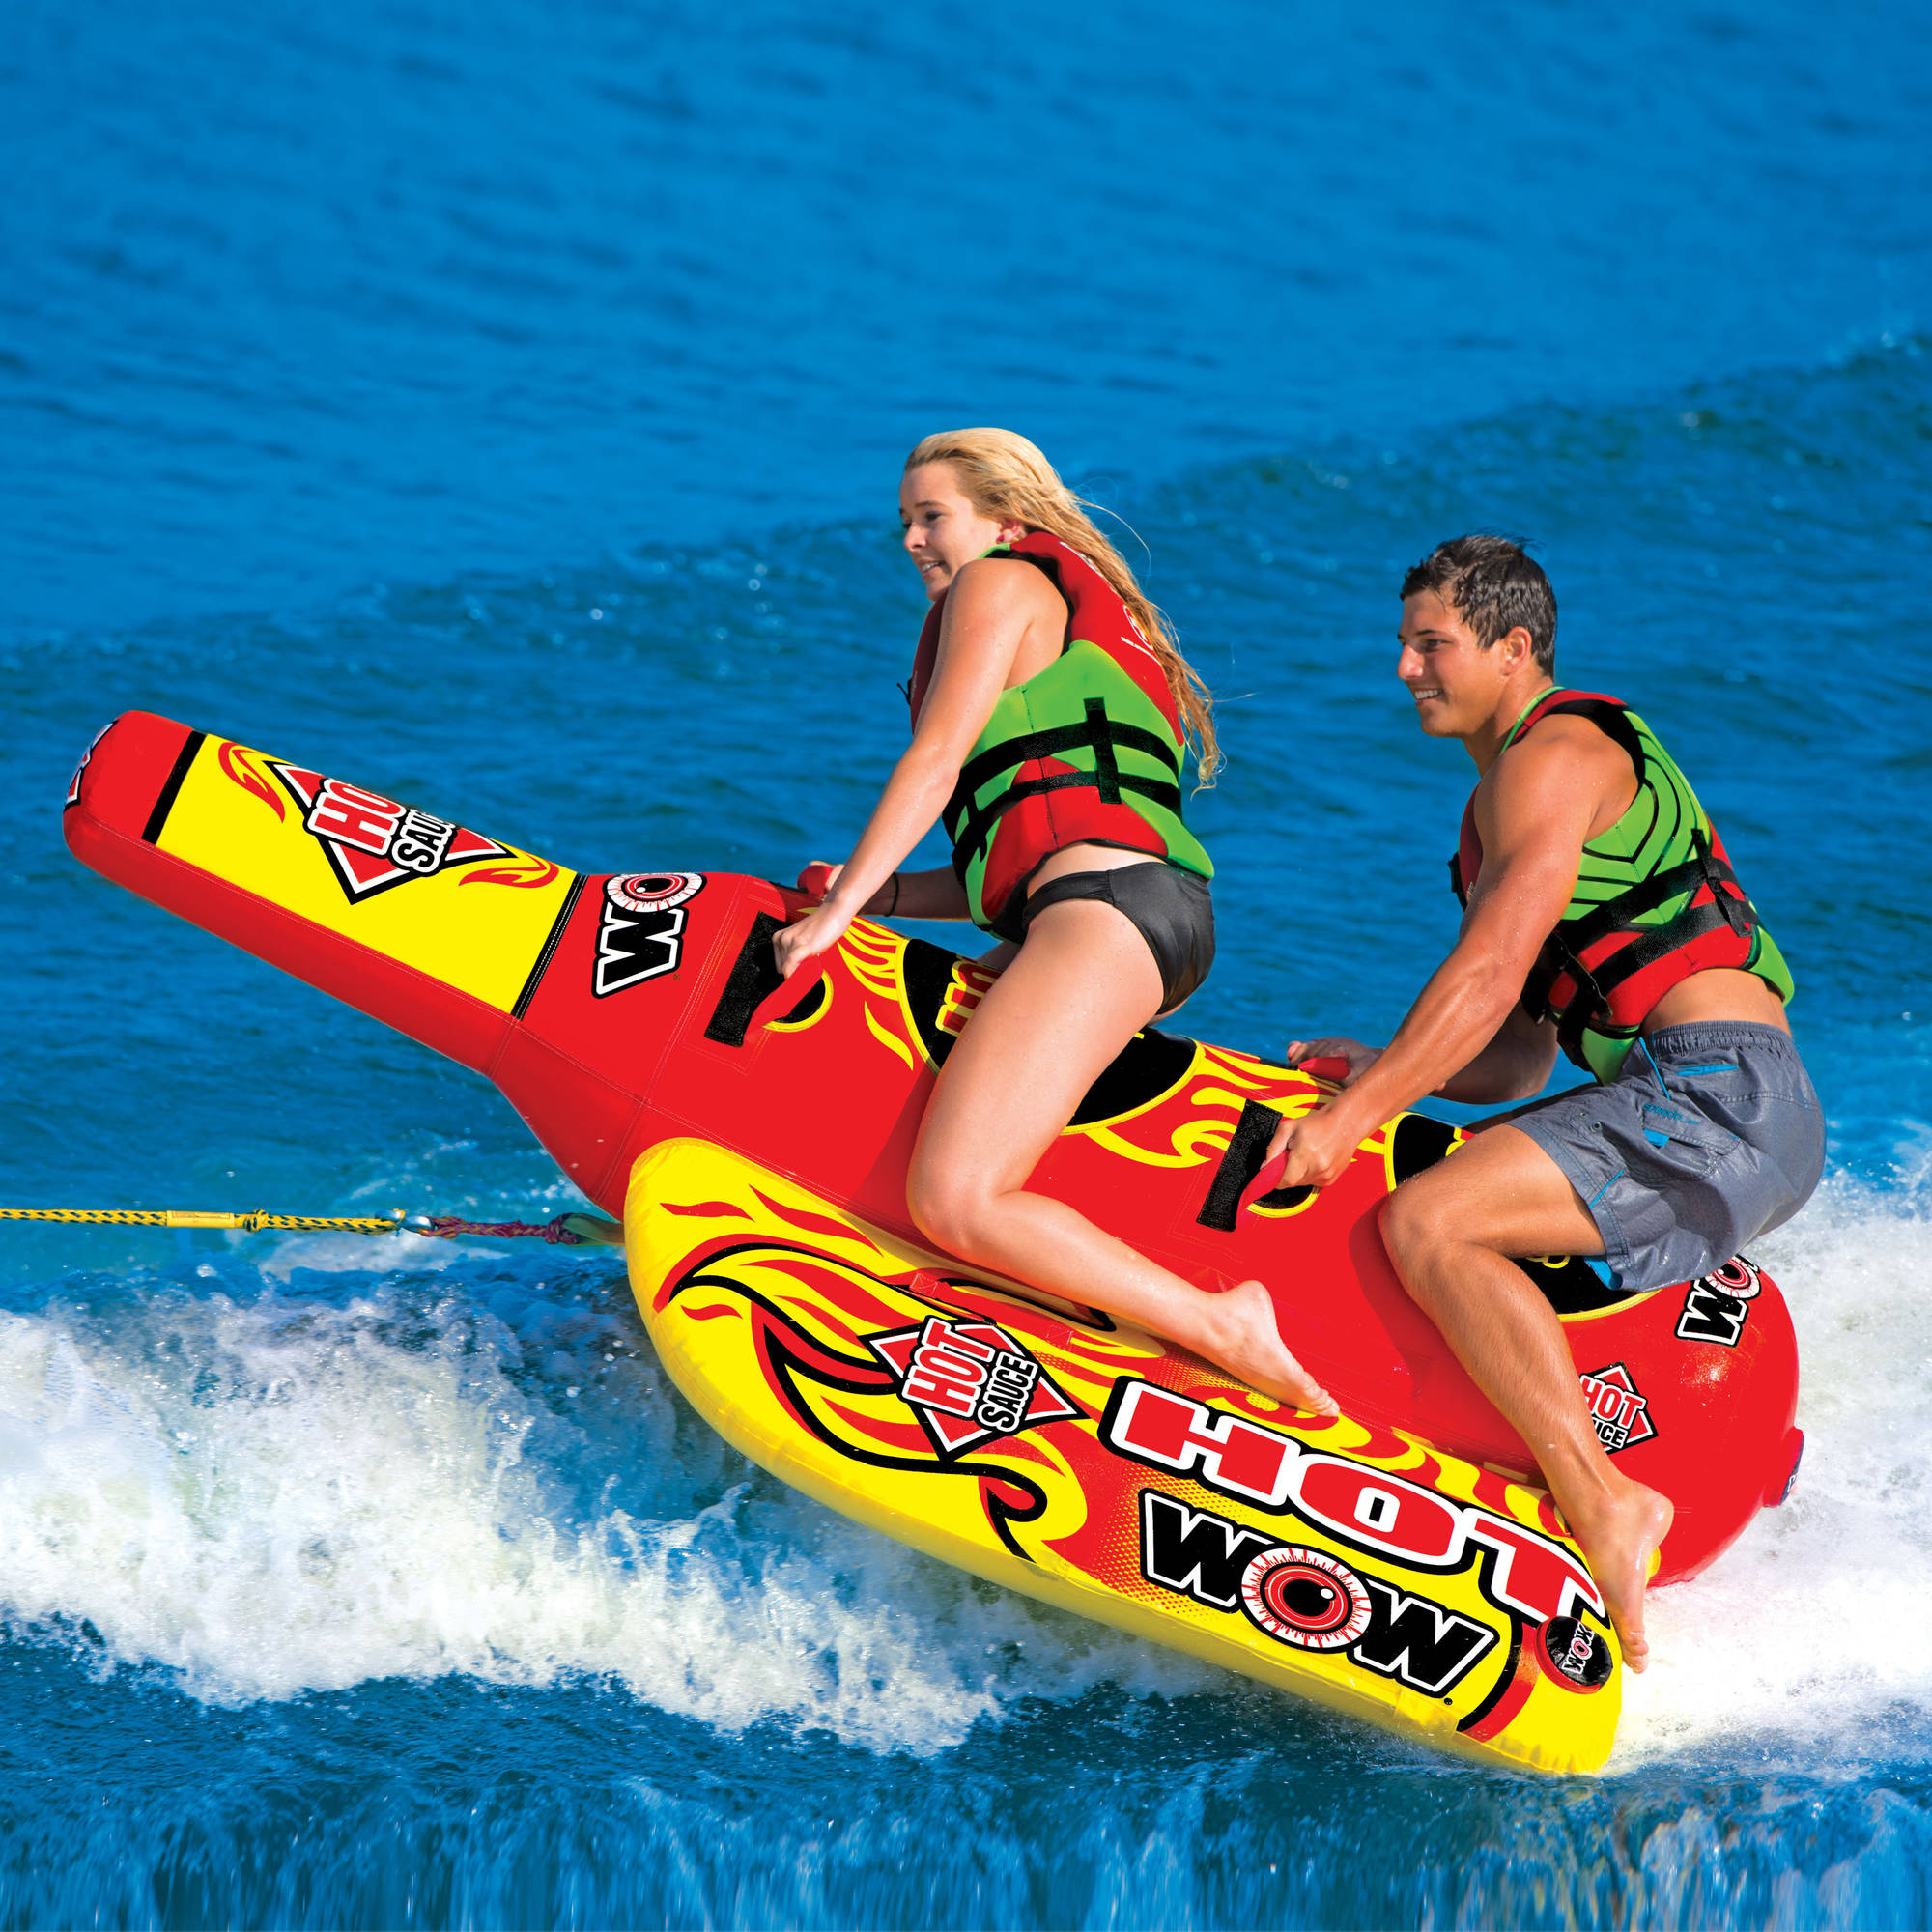 1-2 Person Hot Sauce Towable with Custom-Shaped Pontoons